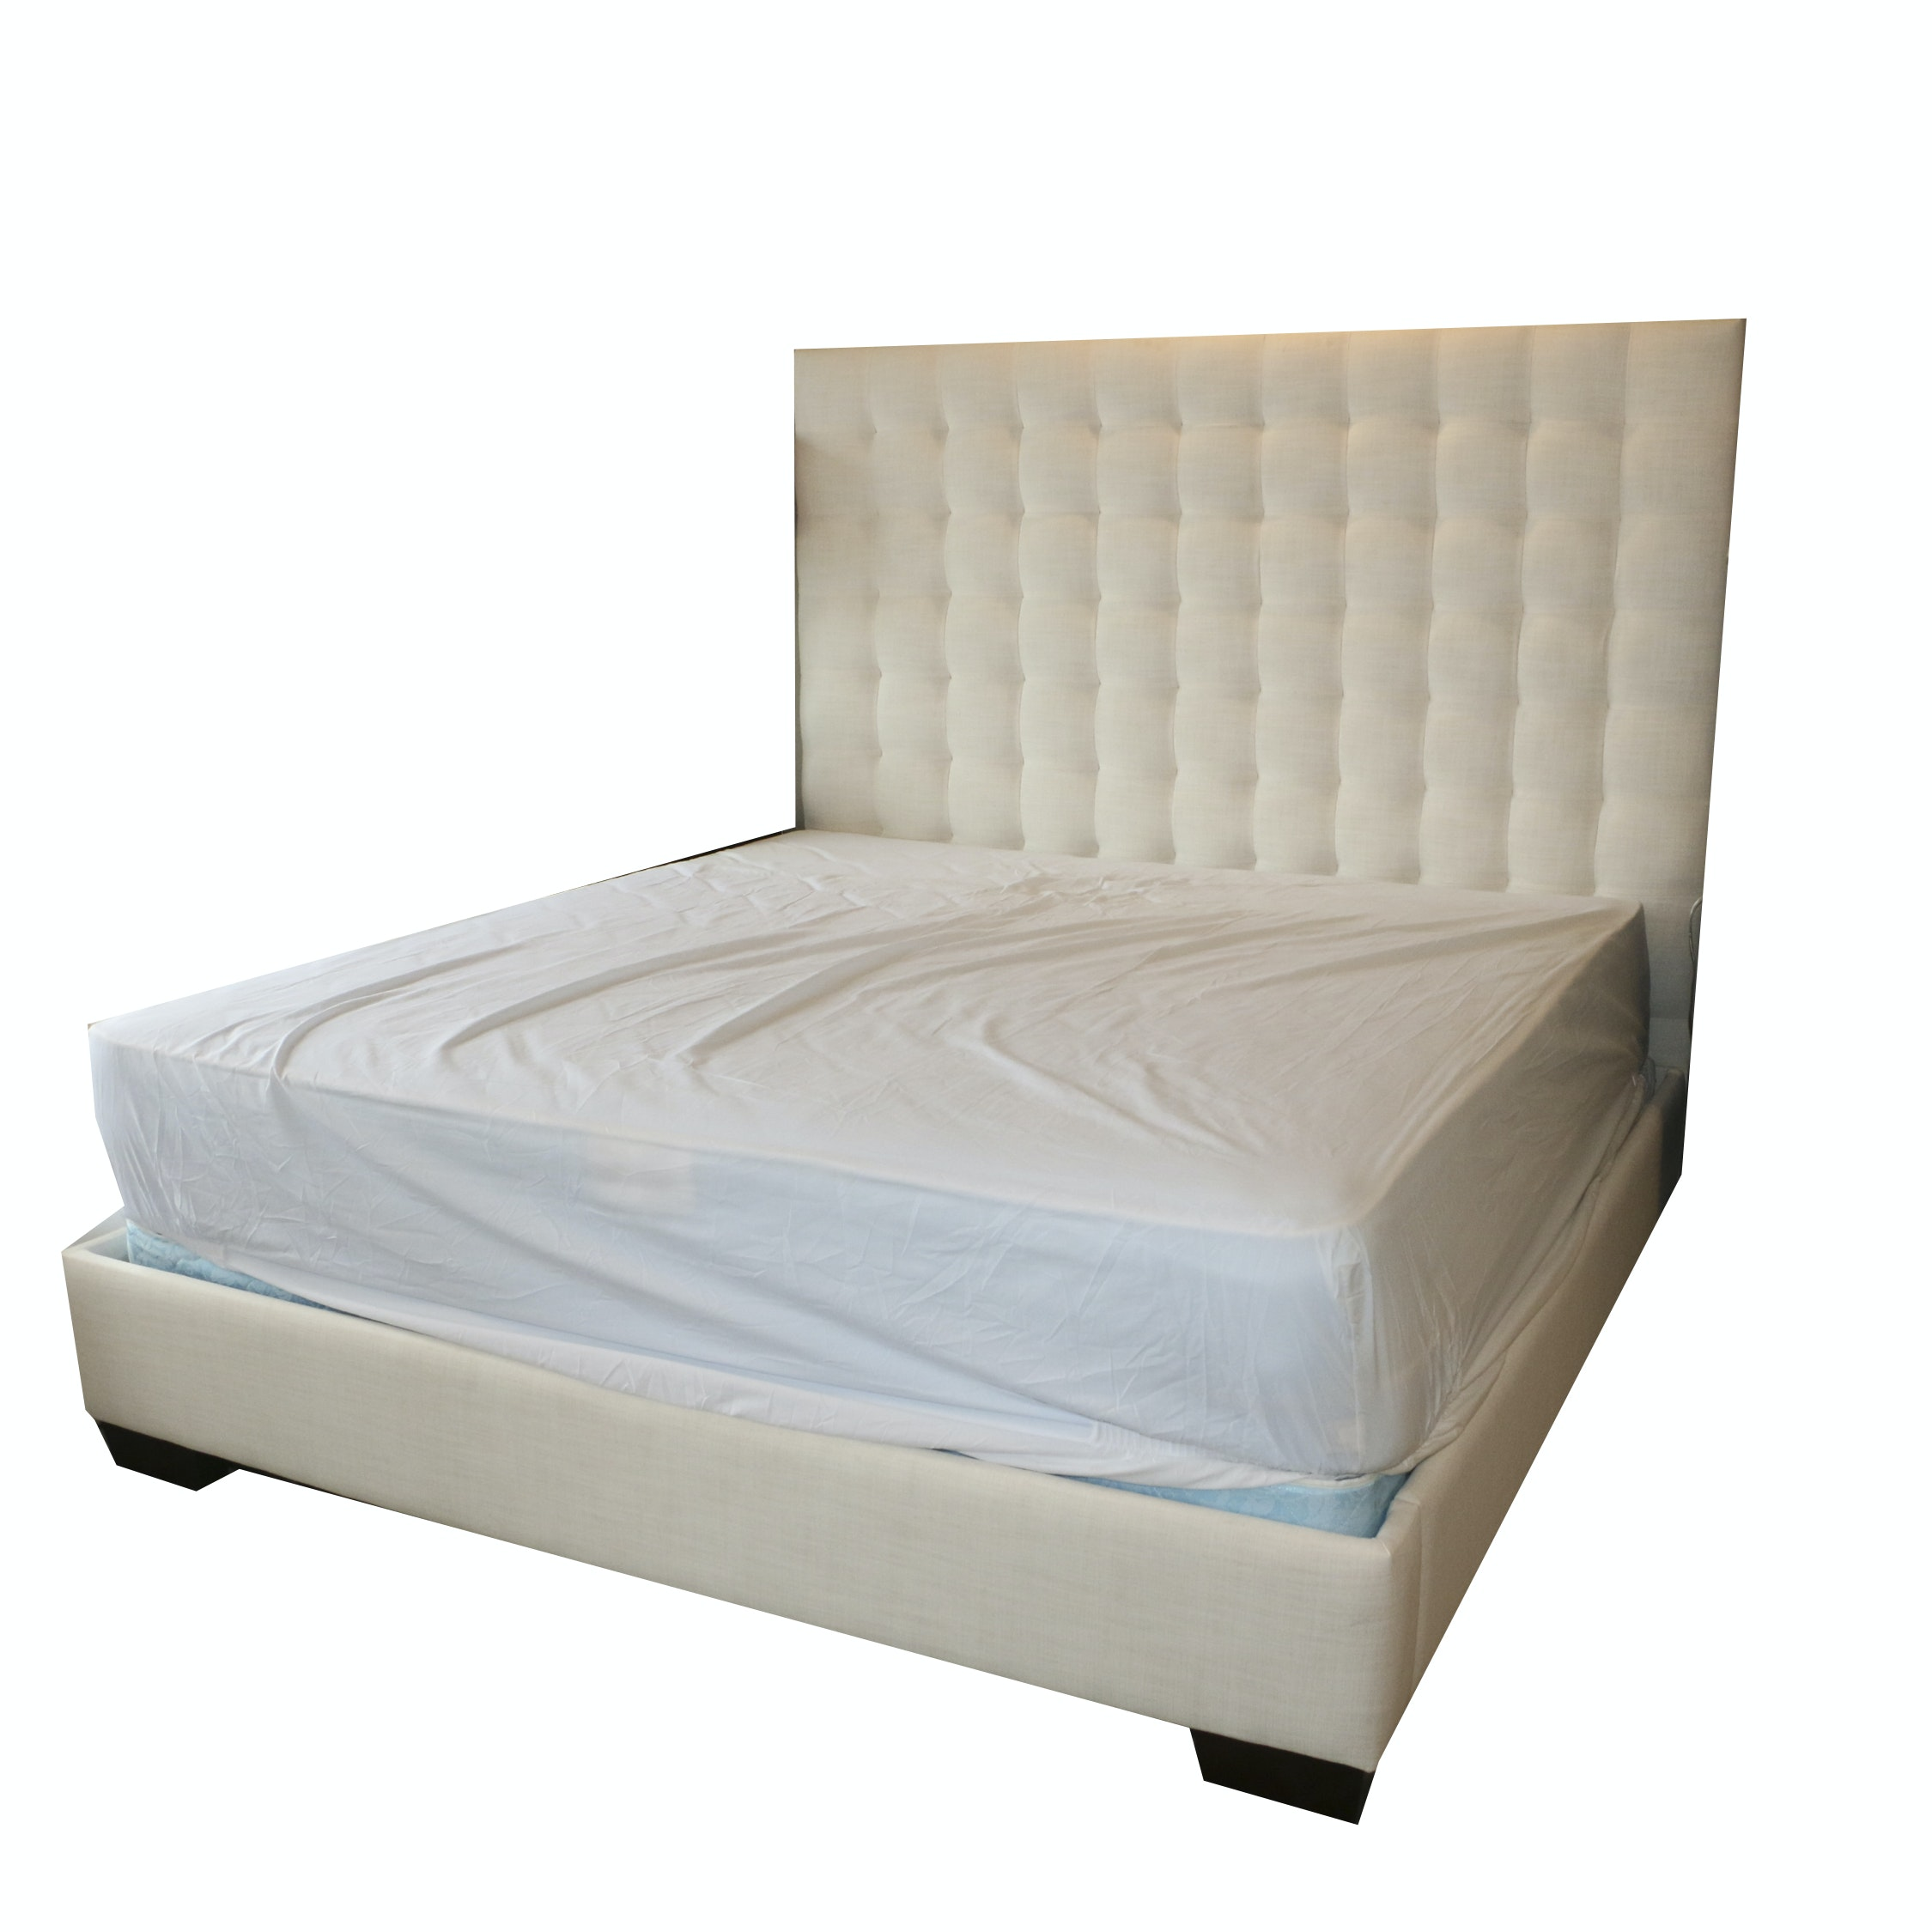 Grid Tufted Upholstered King Size Bed Frame, 21st Century